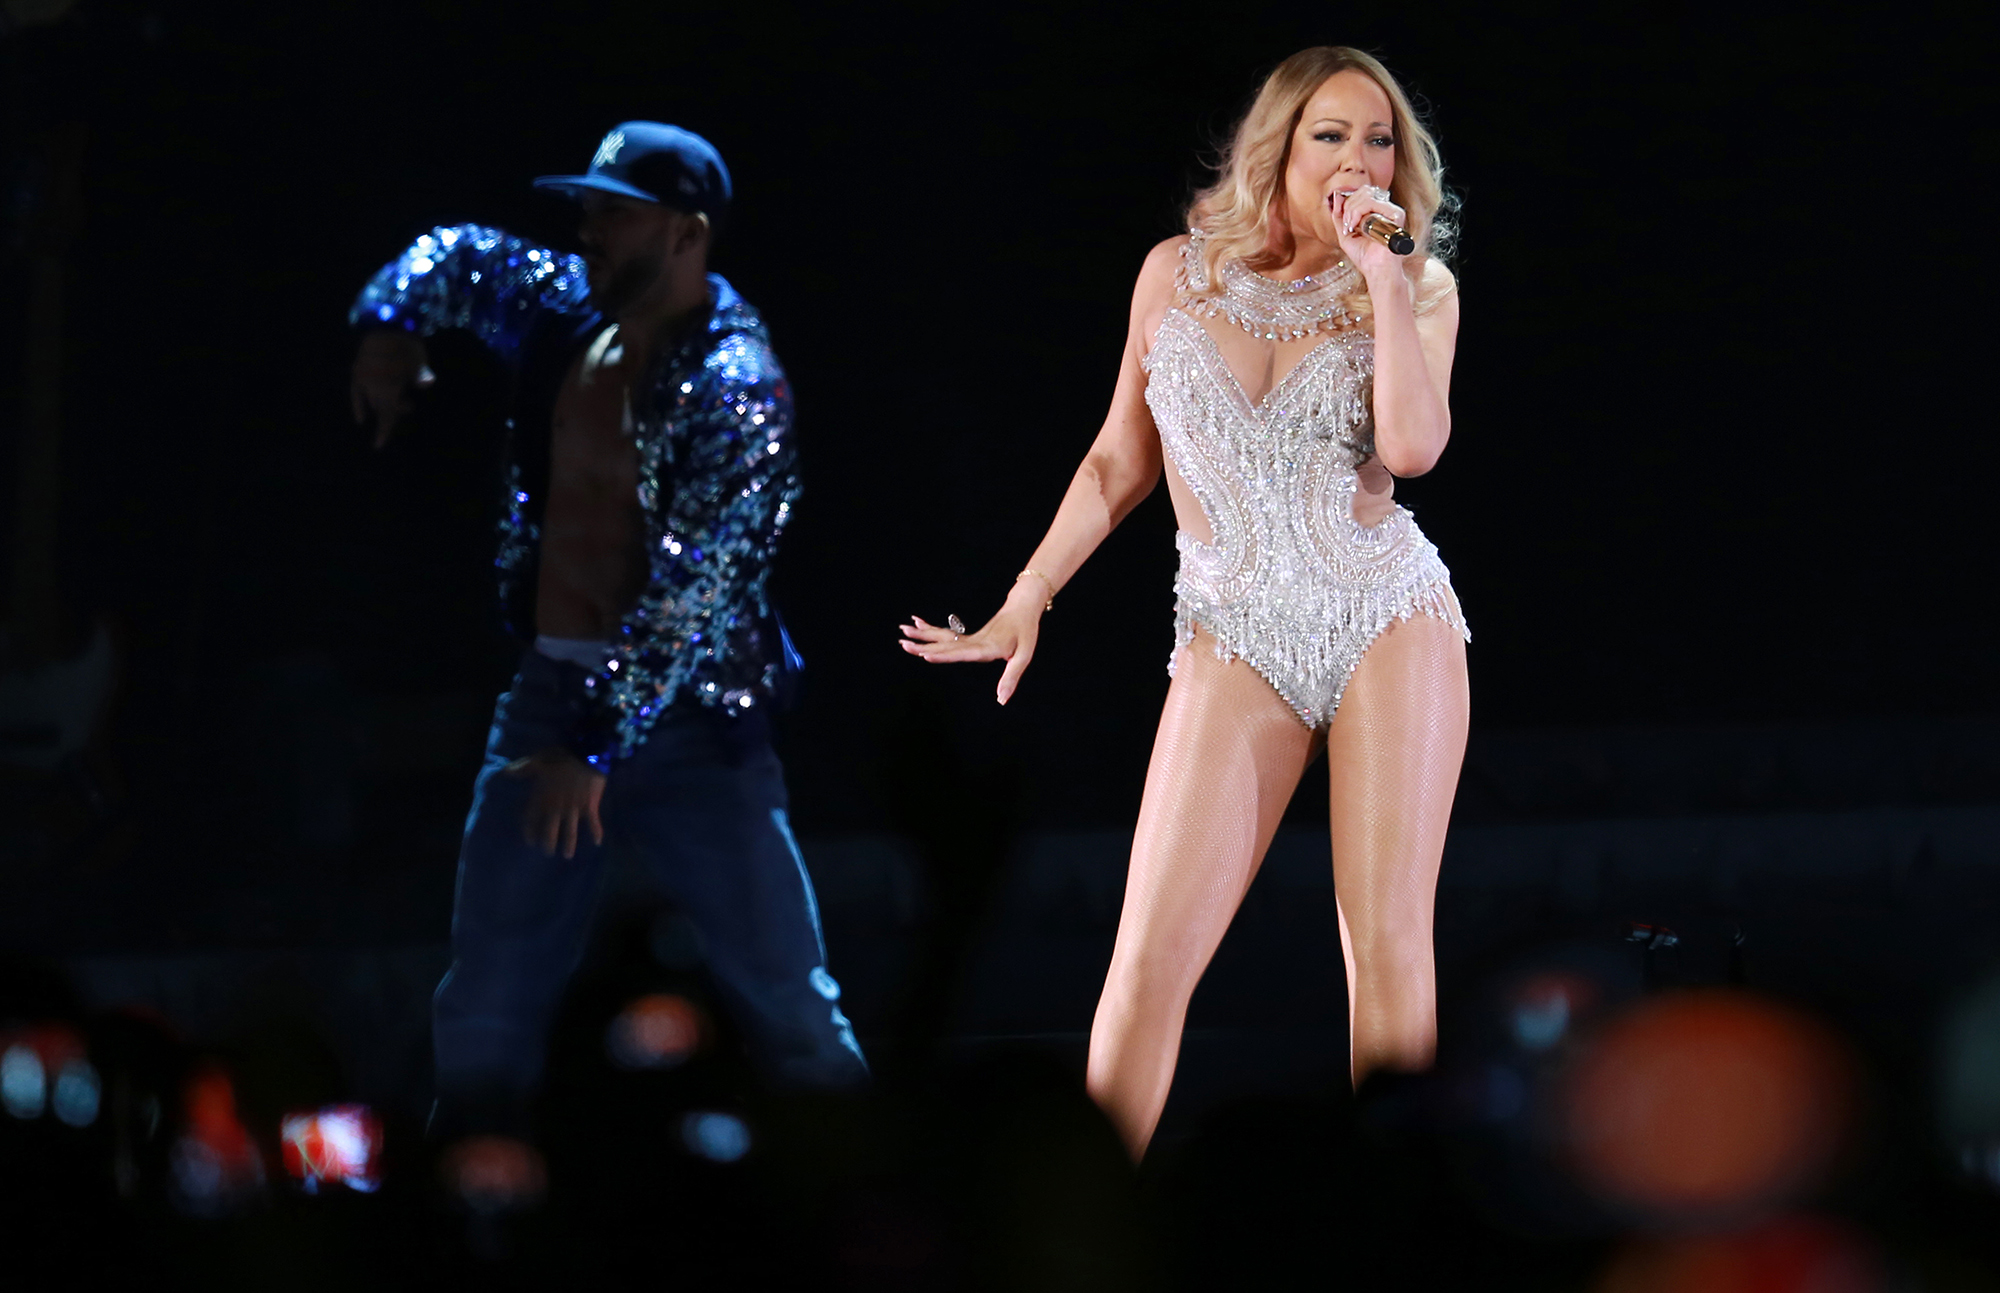 Mariah Carey performs at the Cape Town stadium on April 26, 2016 in Cape Town, South Africa.